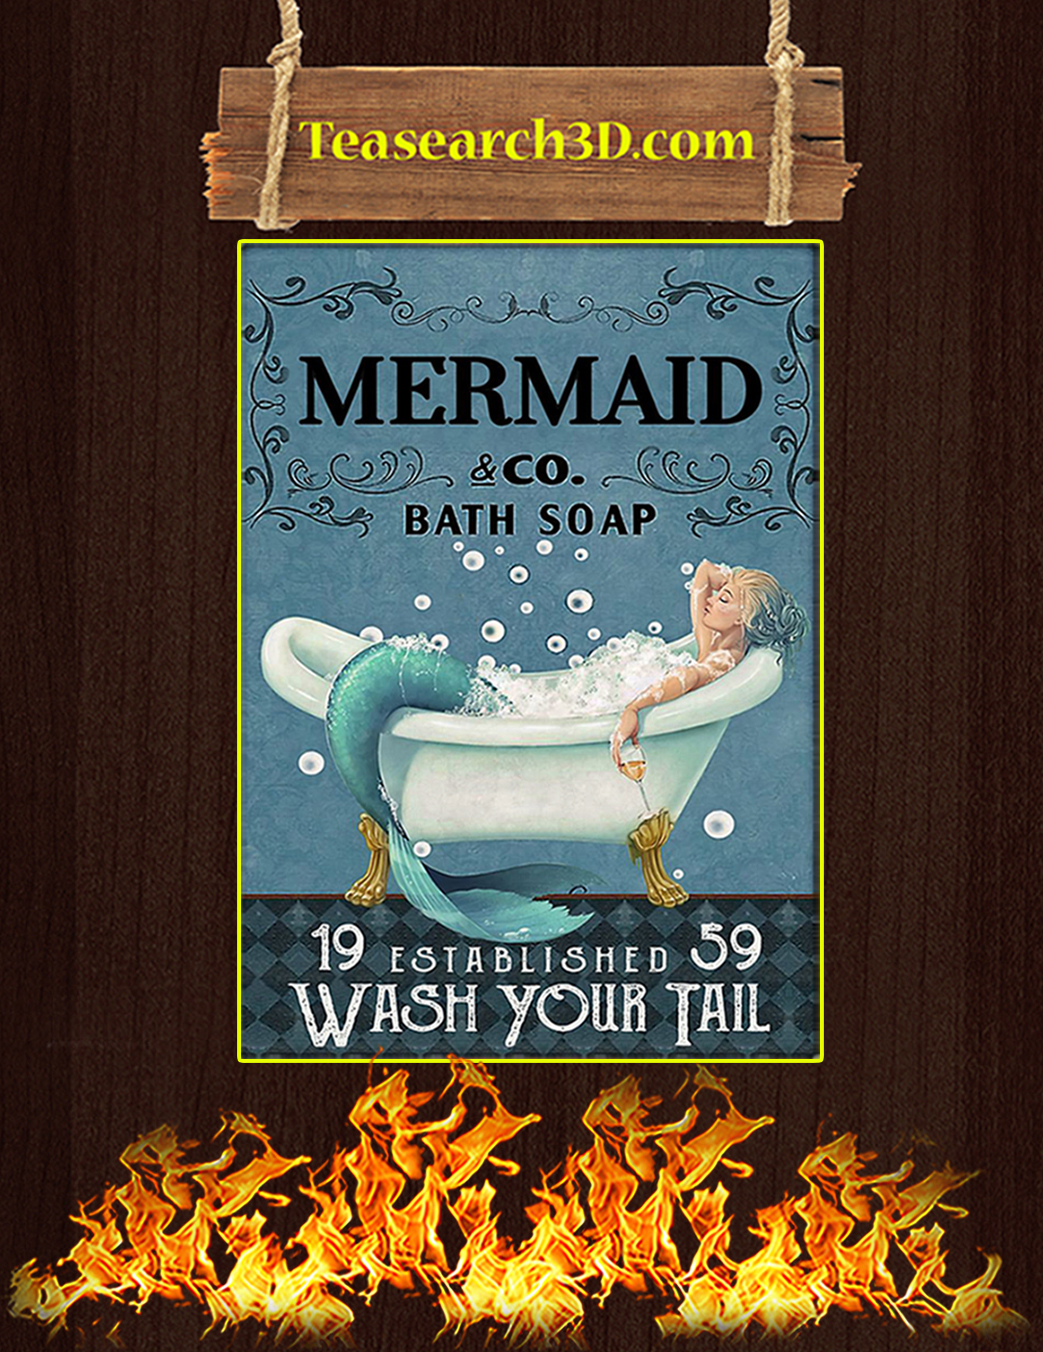 Mermaid co bath soap wash your tail poster A1